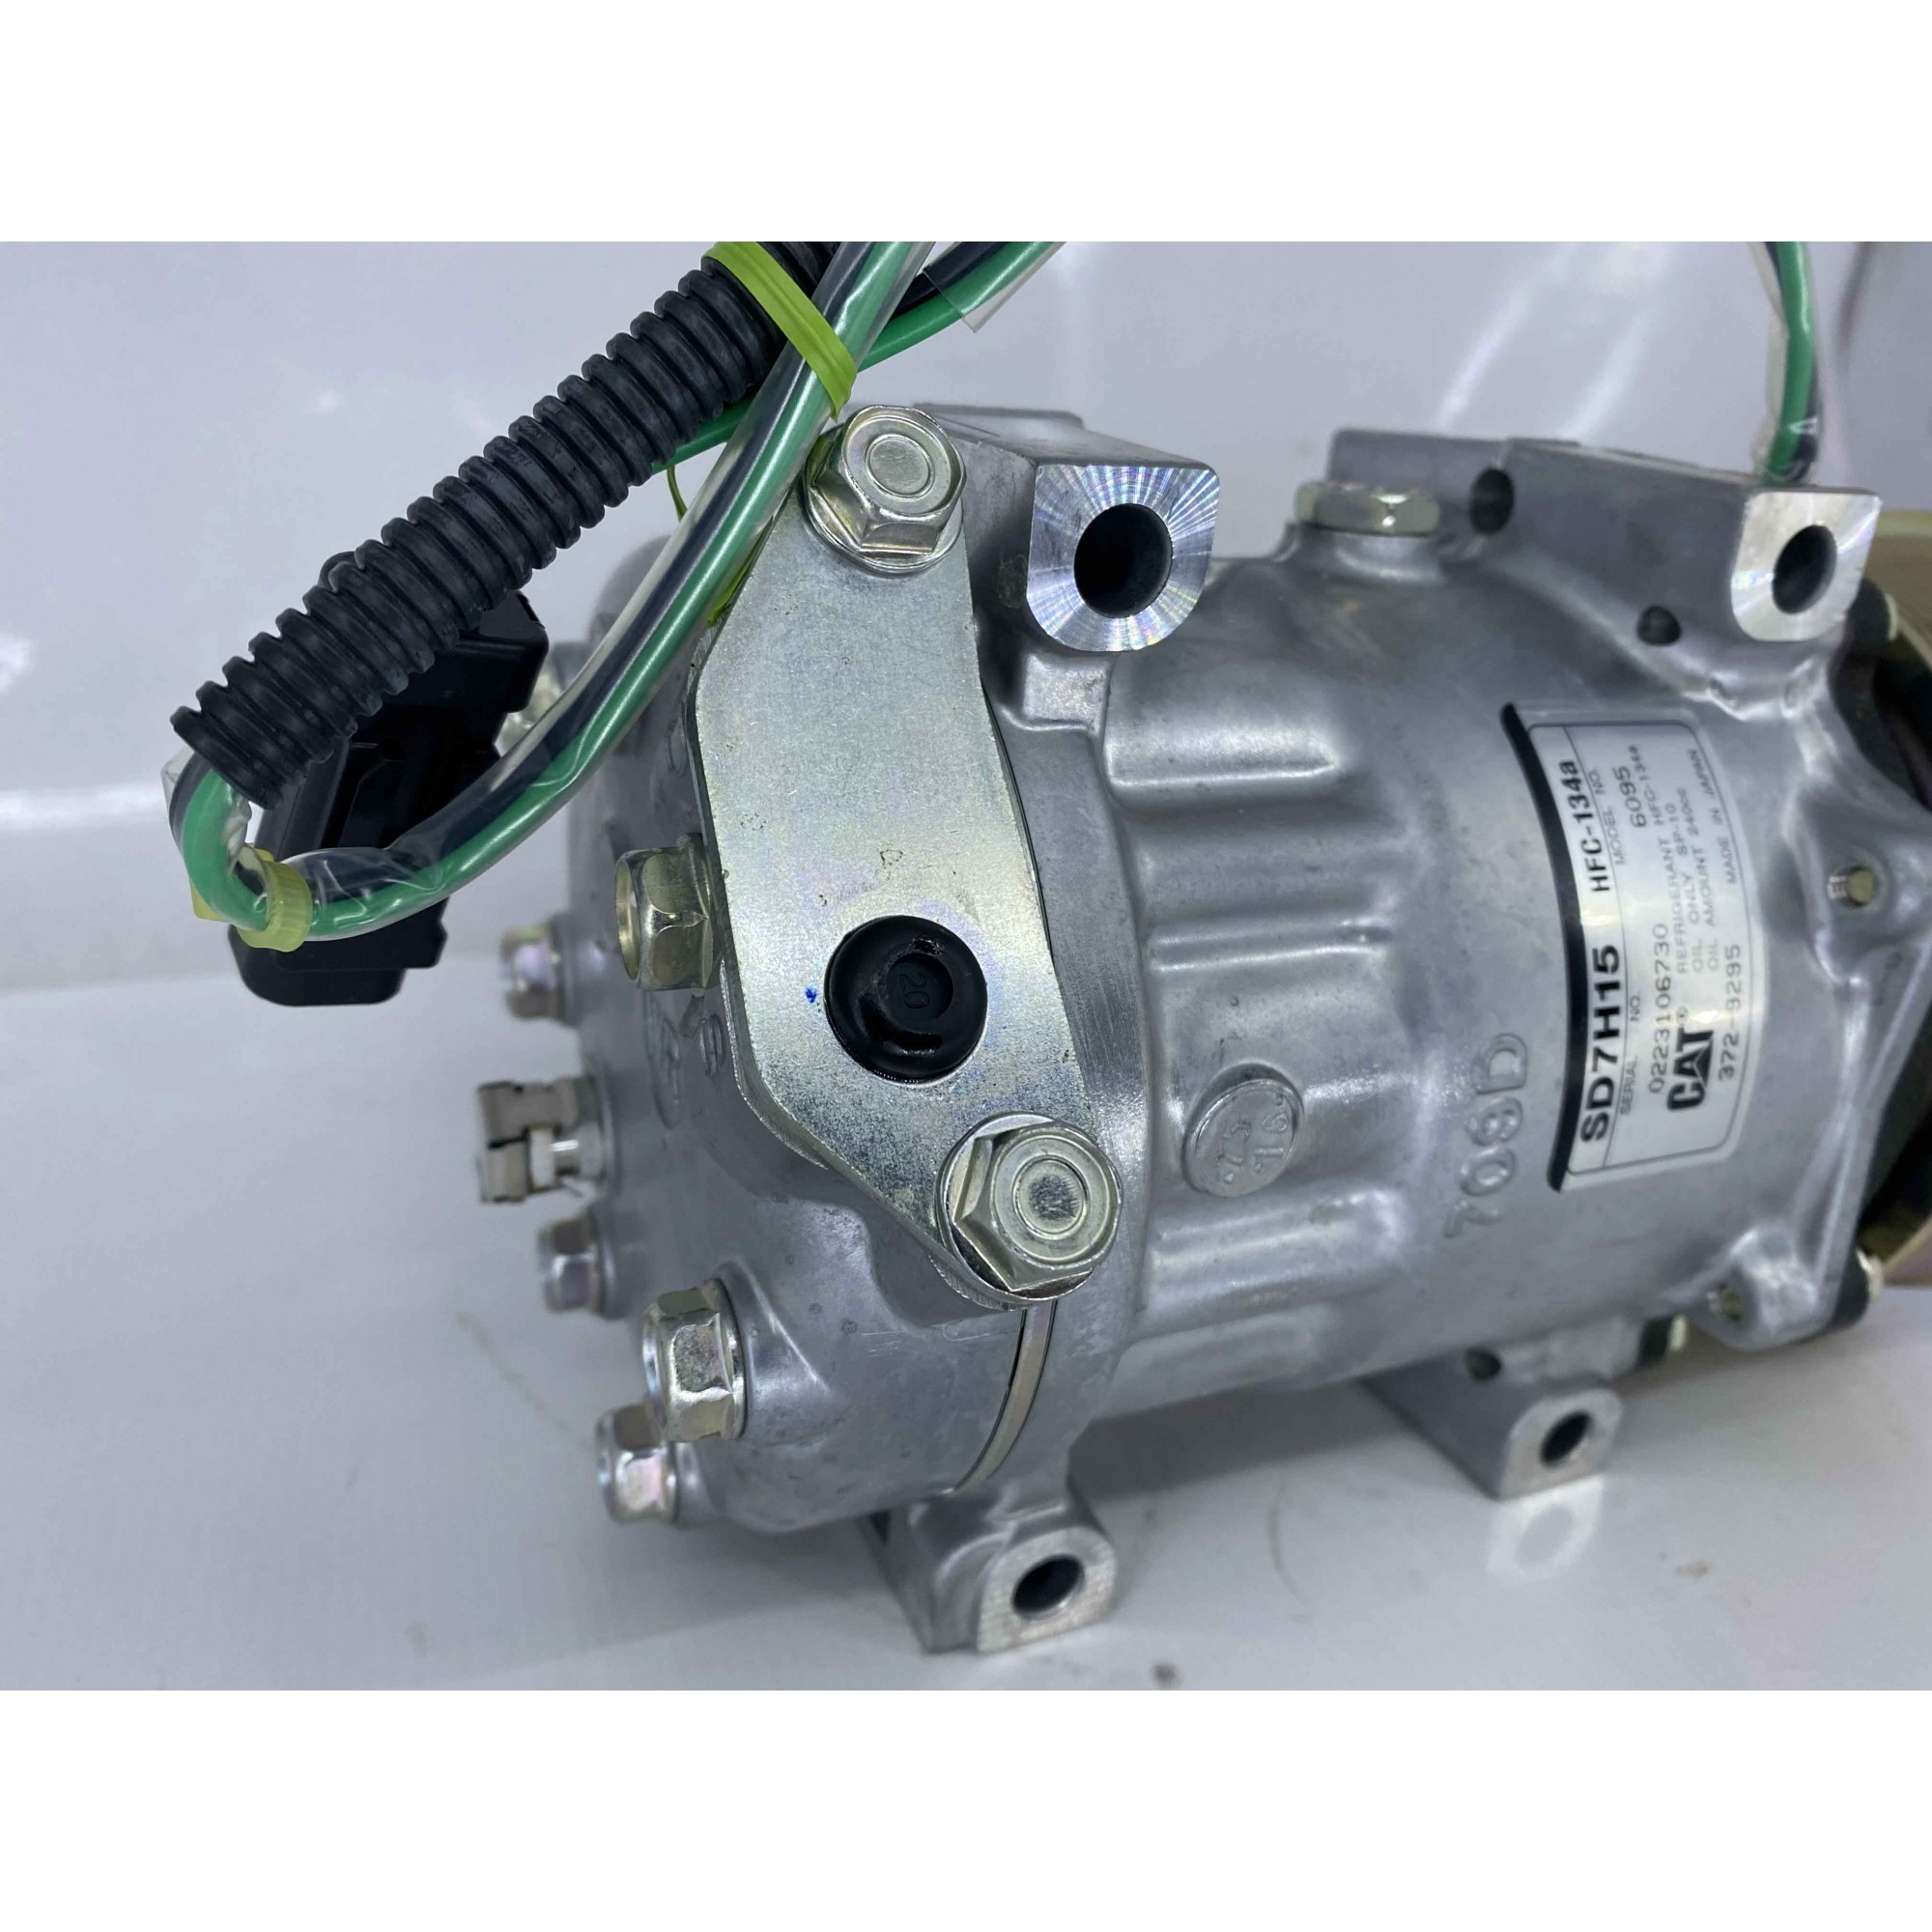 Compressor escavadeira Caterpilar 2012 2013 2014 2015 12pk original sanden